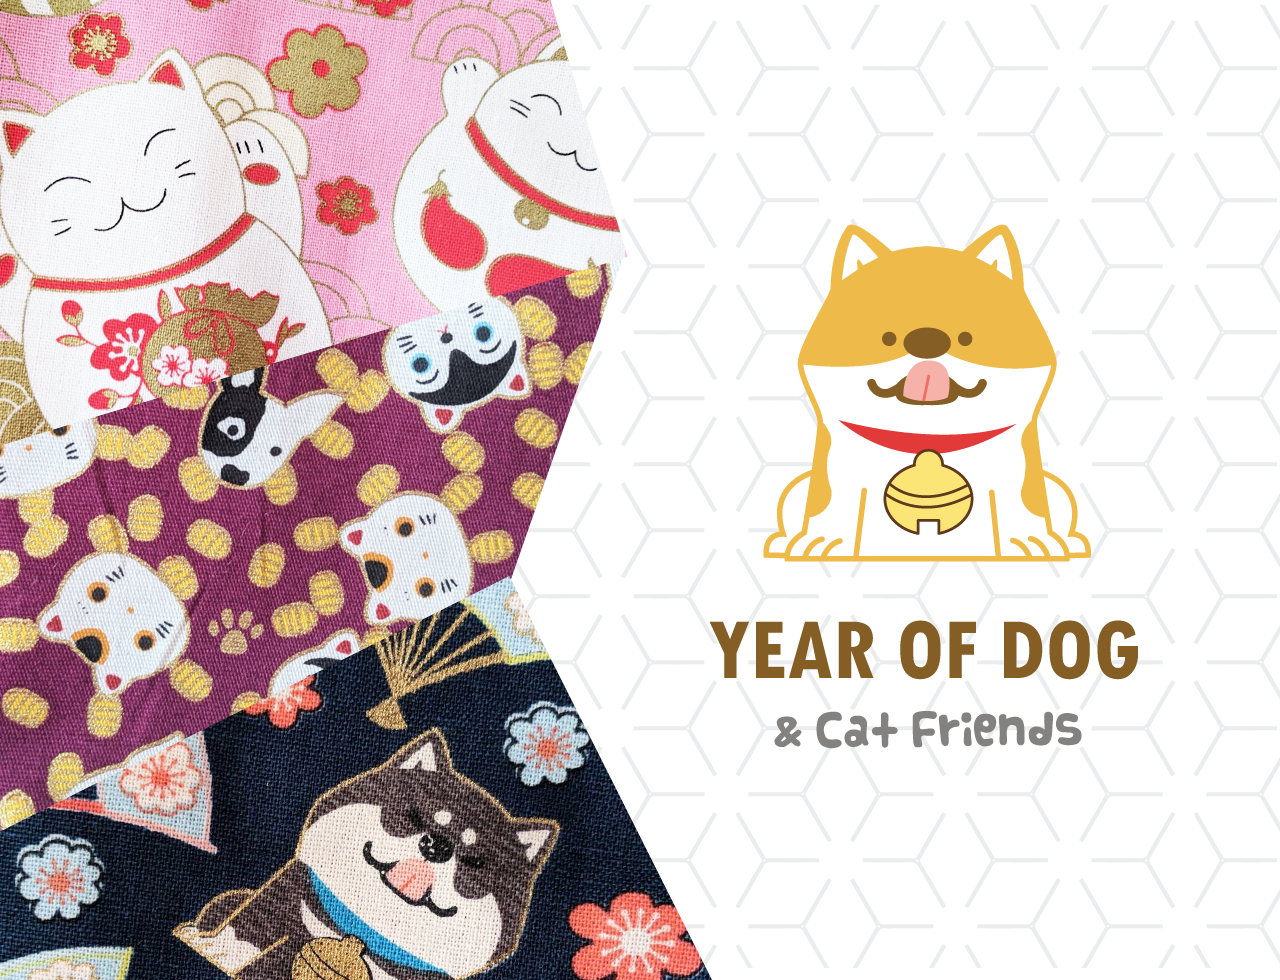 Shop all Dogs and Cats accessories